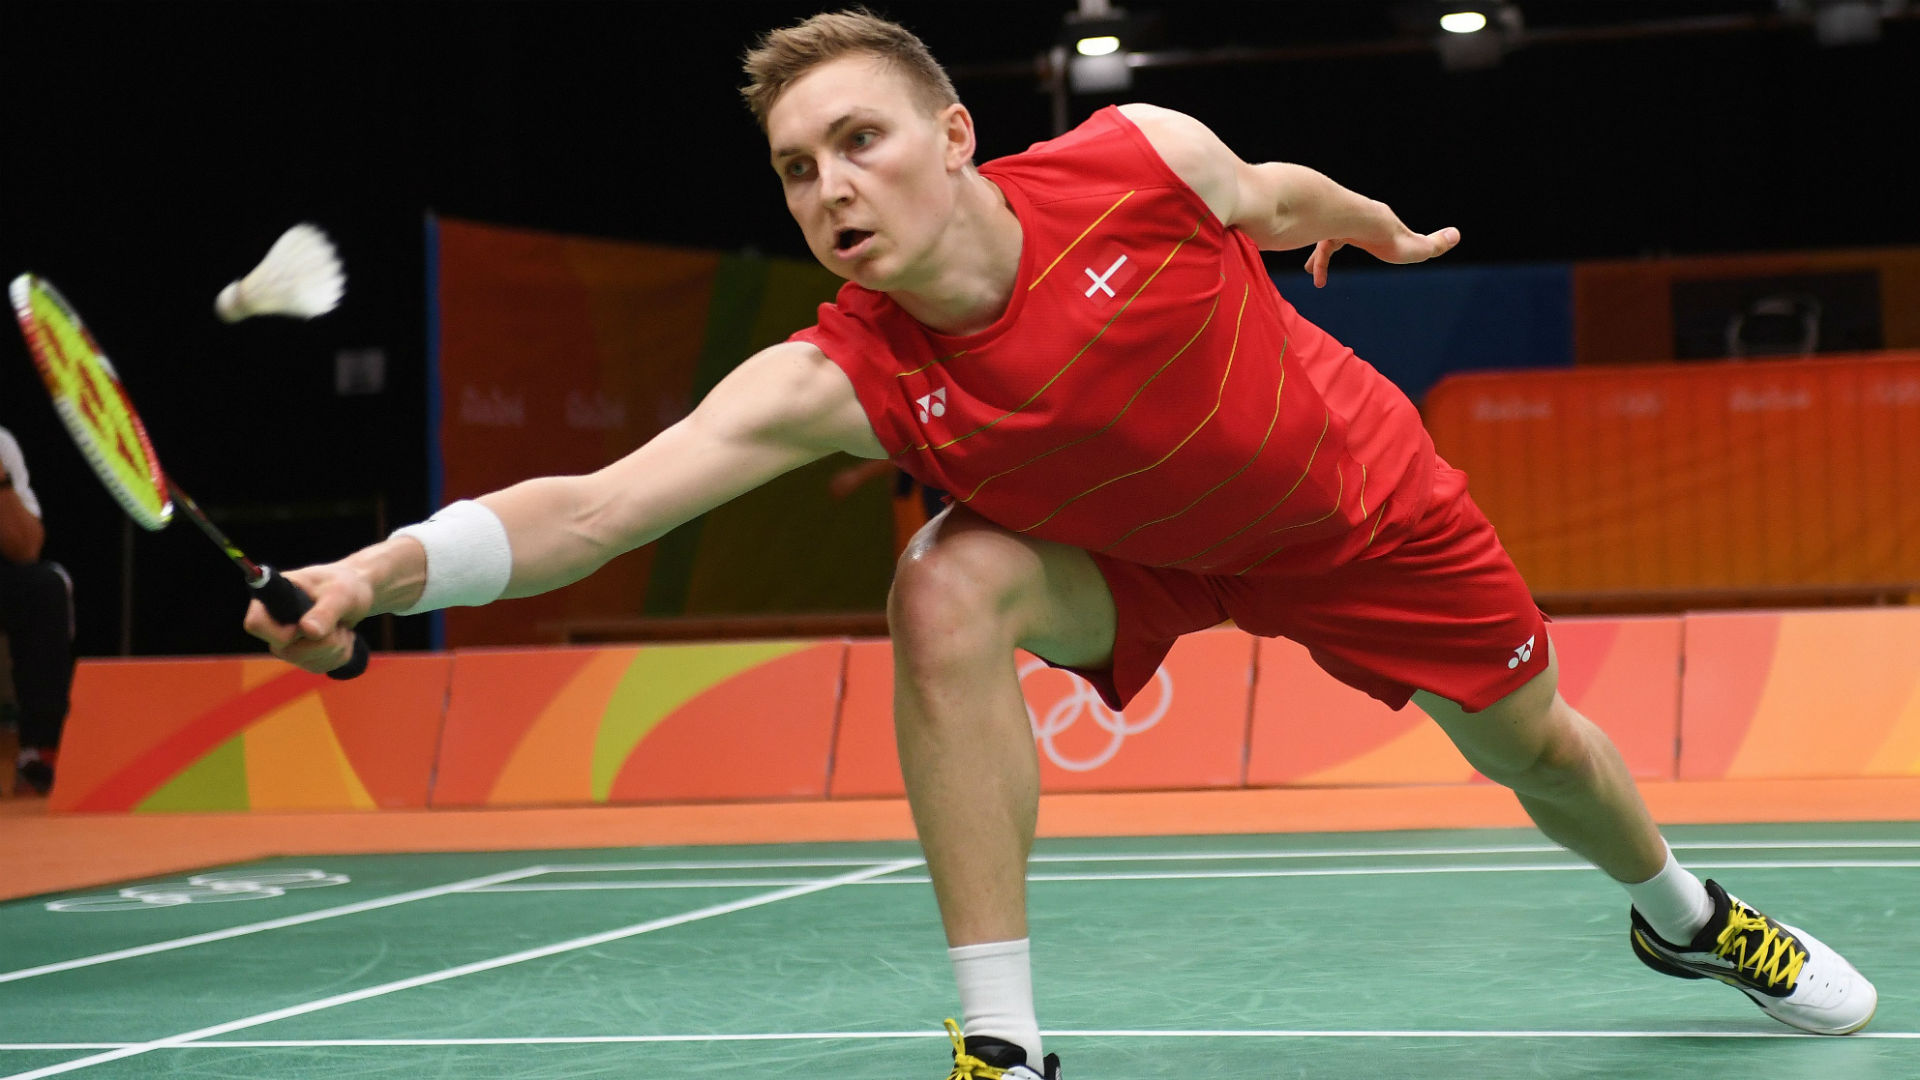 Rio Olympics 2016 Badminton player falls through hole during